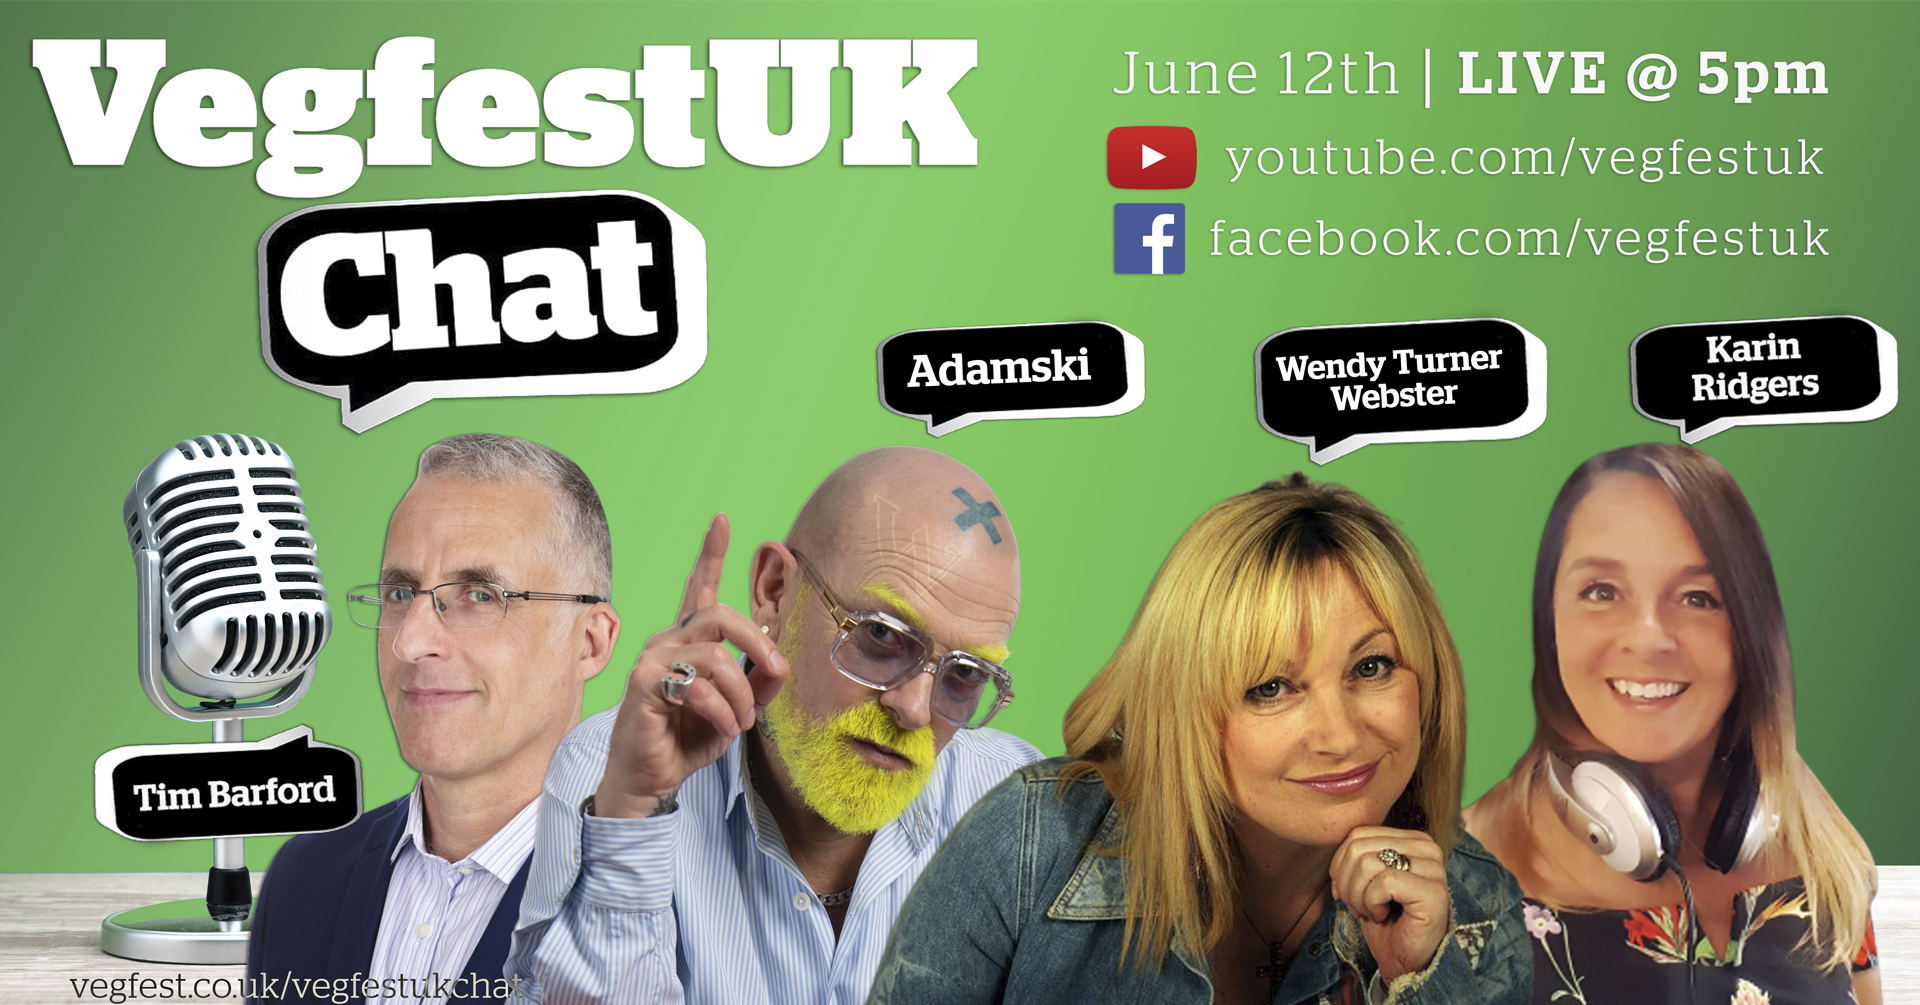 VegfestUK Chat is back for a third instalment with TWO special guests